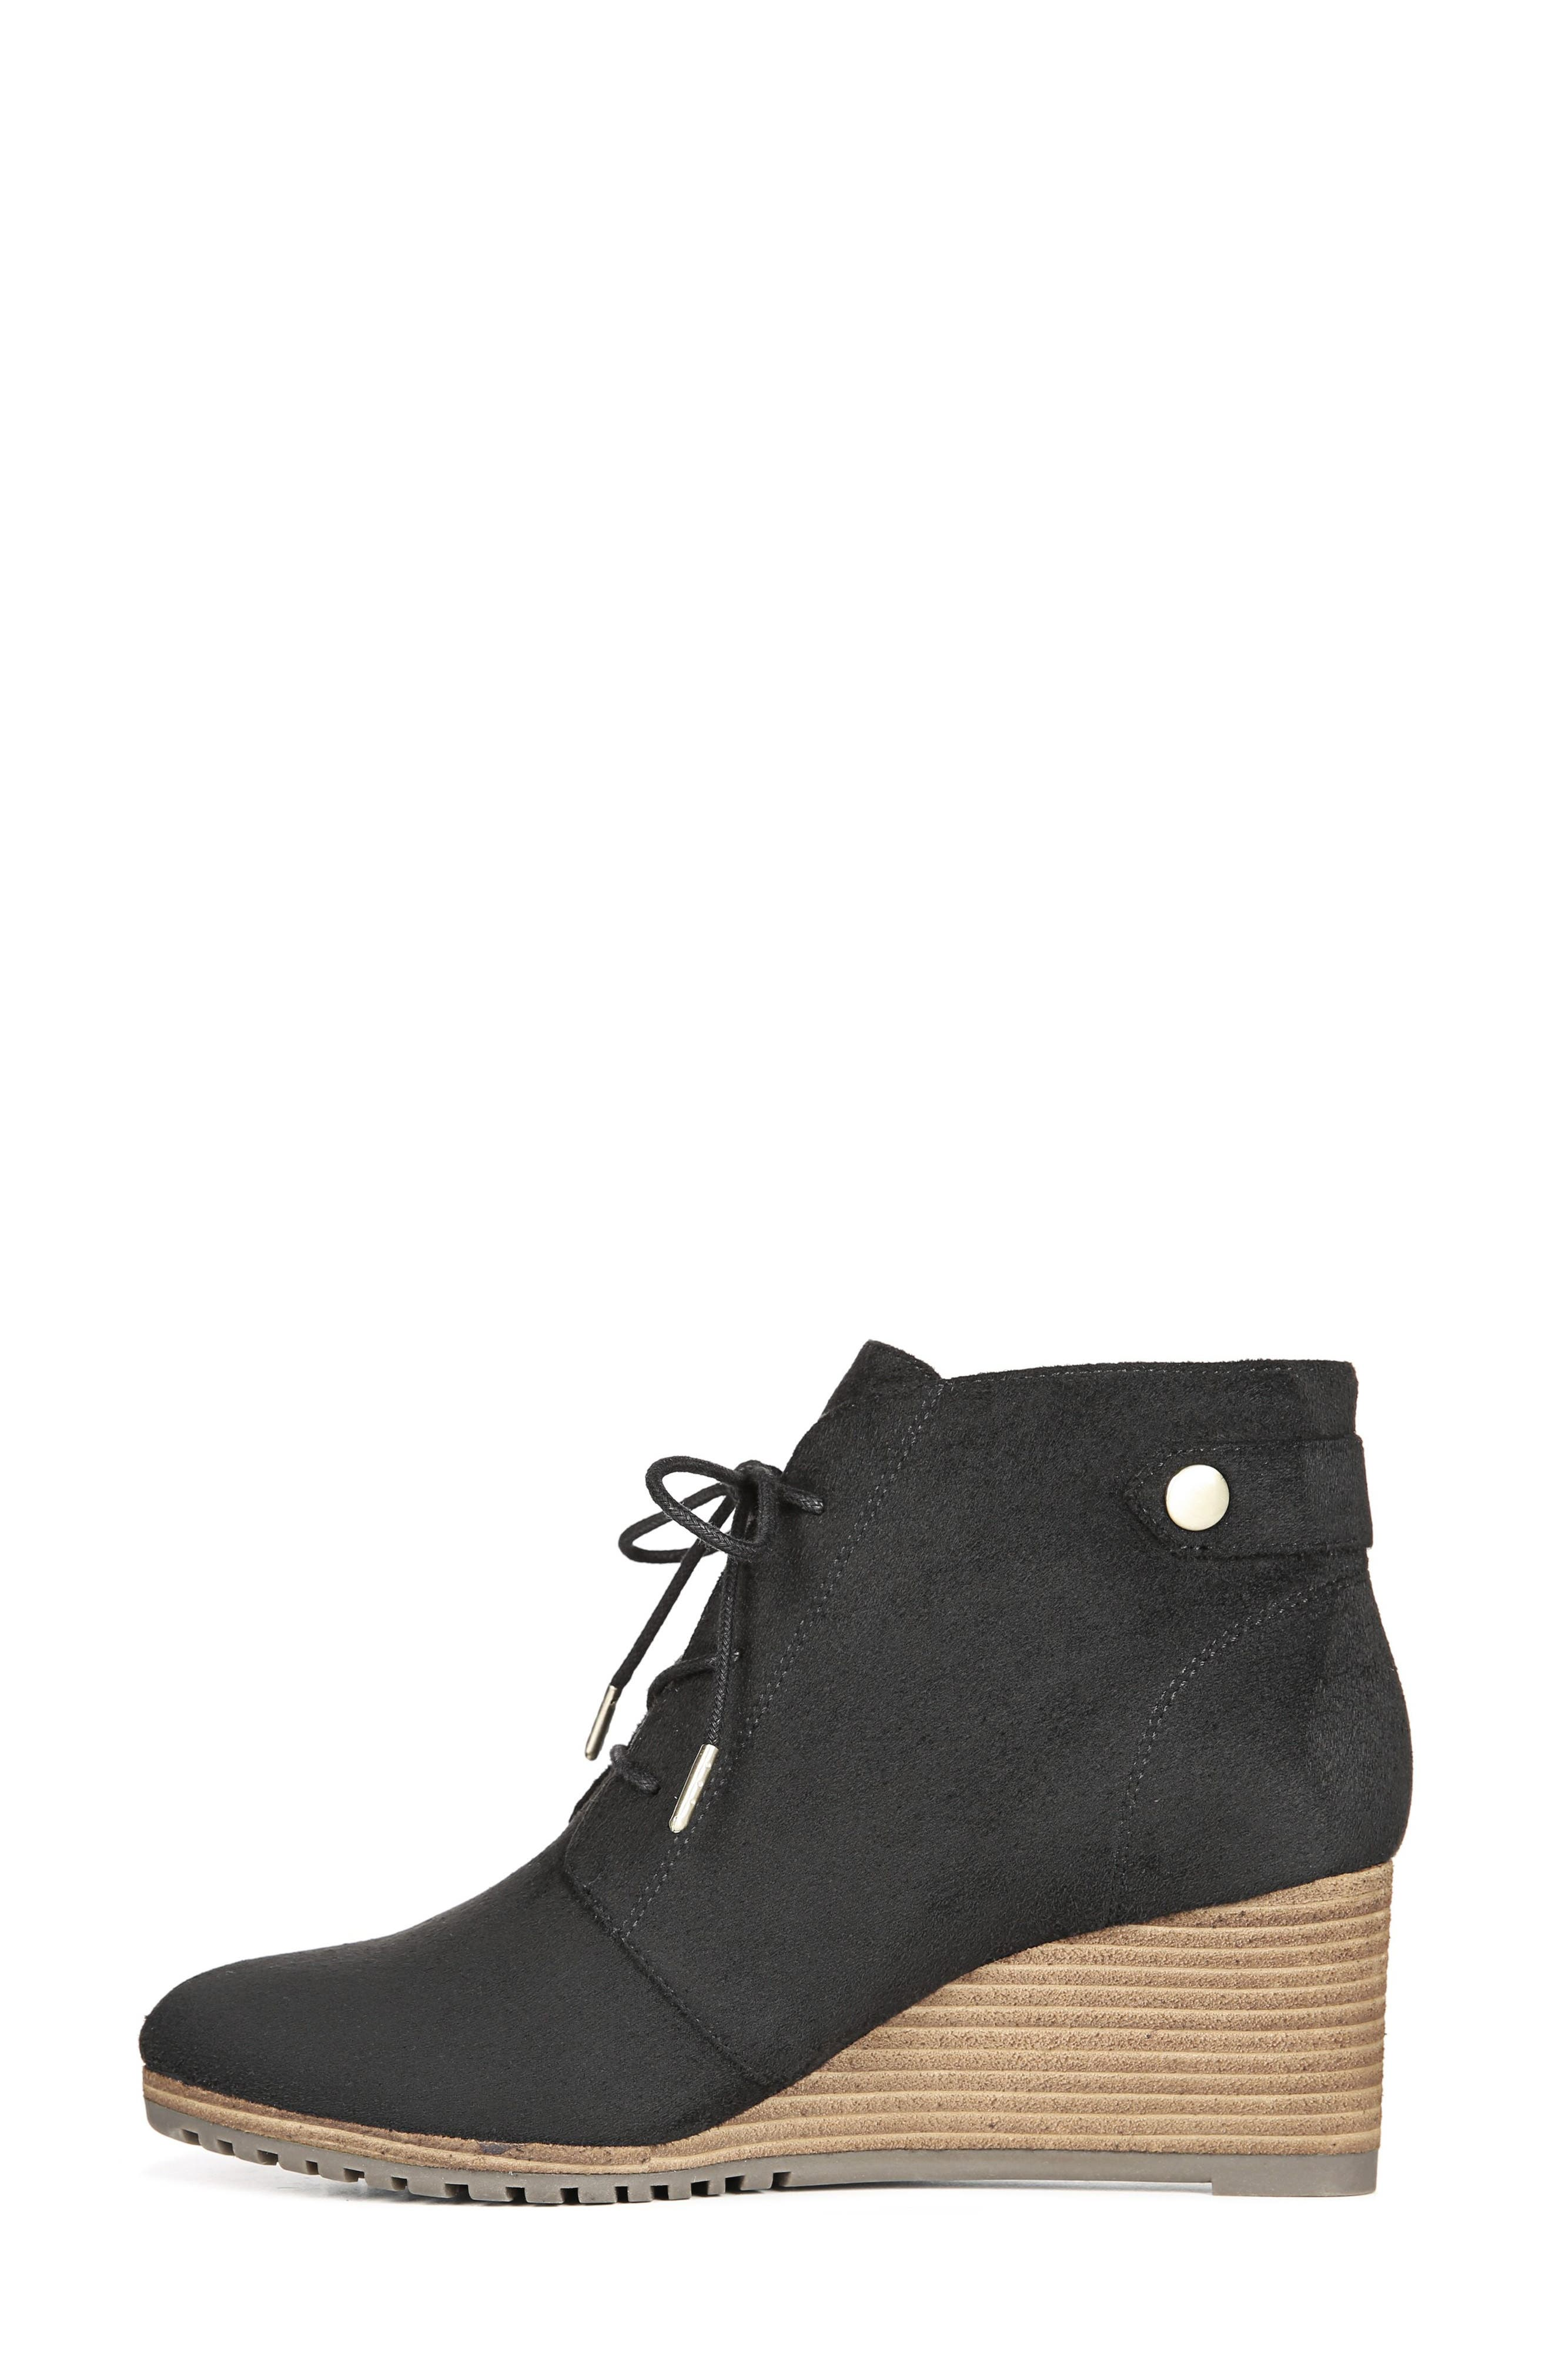 Conquer Wedge Bootie,                             Alternate thumbnail 7, color,                             BLACK FABRIC